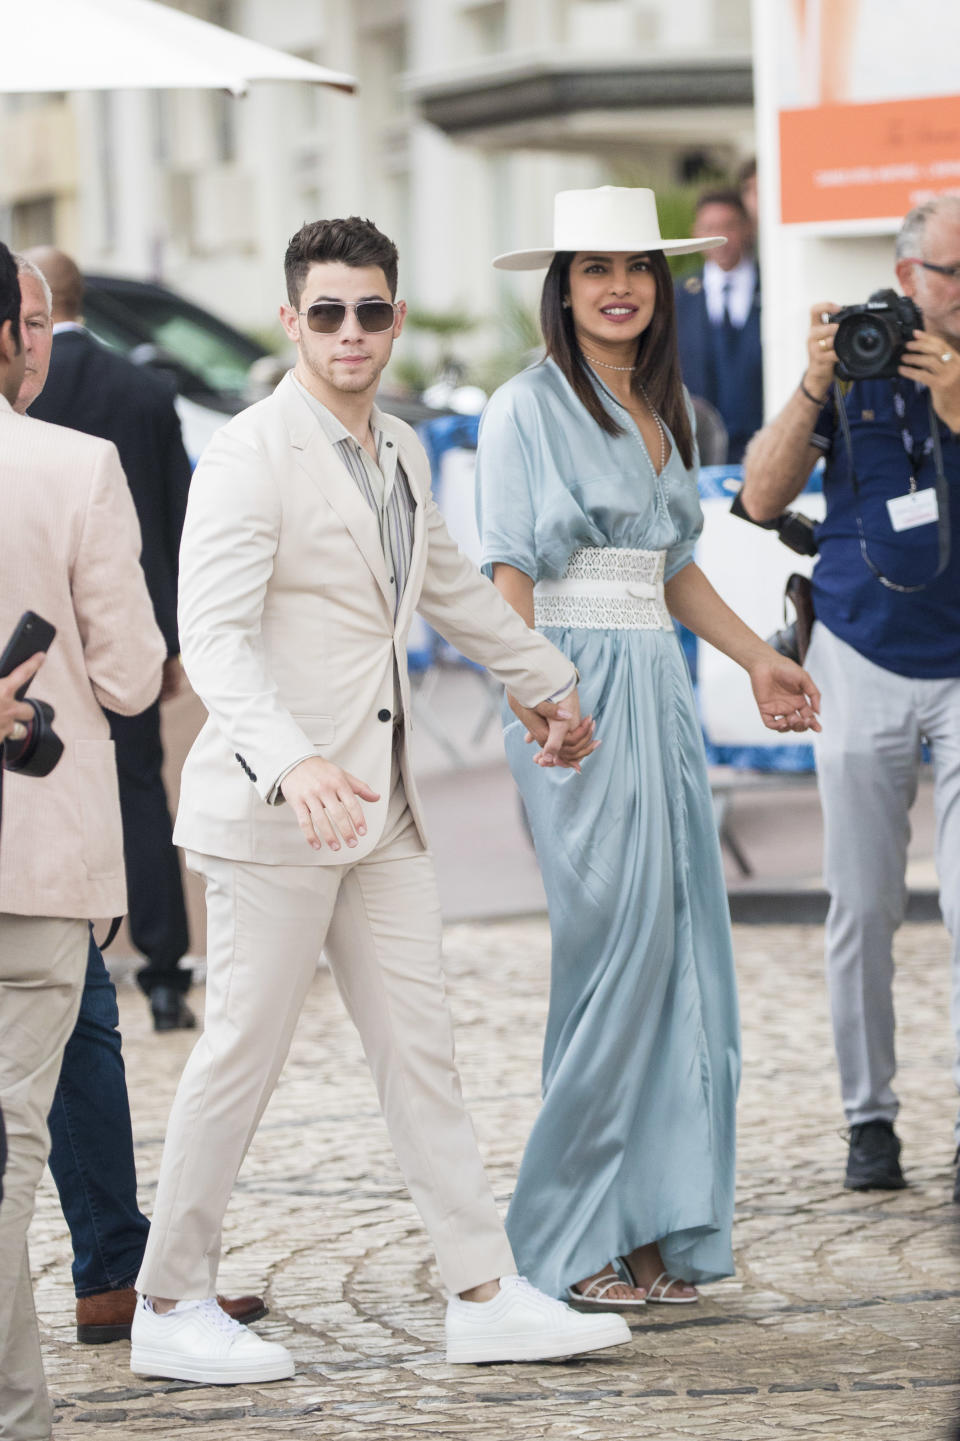 CANNES, FRANCE - MAY 17: Joe Jonas and Priyanka Chopra are seen during the 72nd annual Cannes Film Festival on May 17, 2019 in Cannes, France. (Photo by Iconic/GC Images)